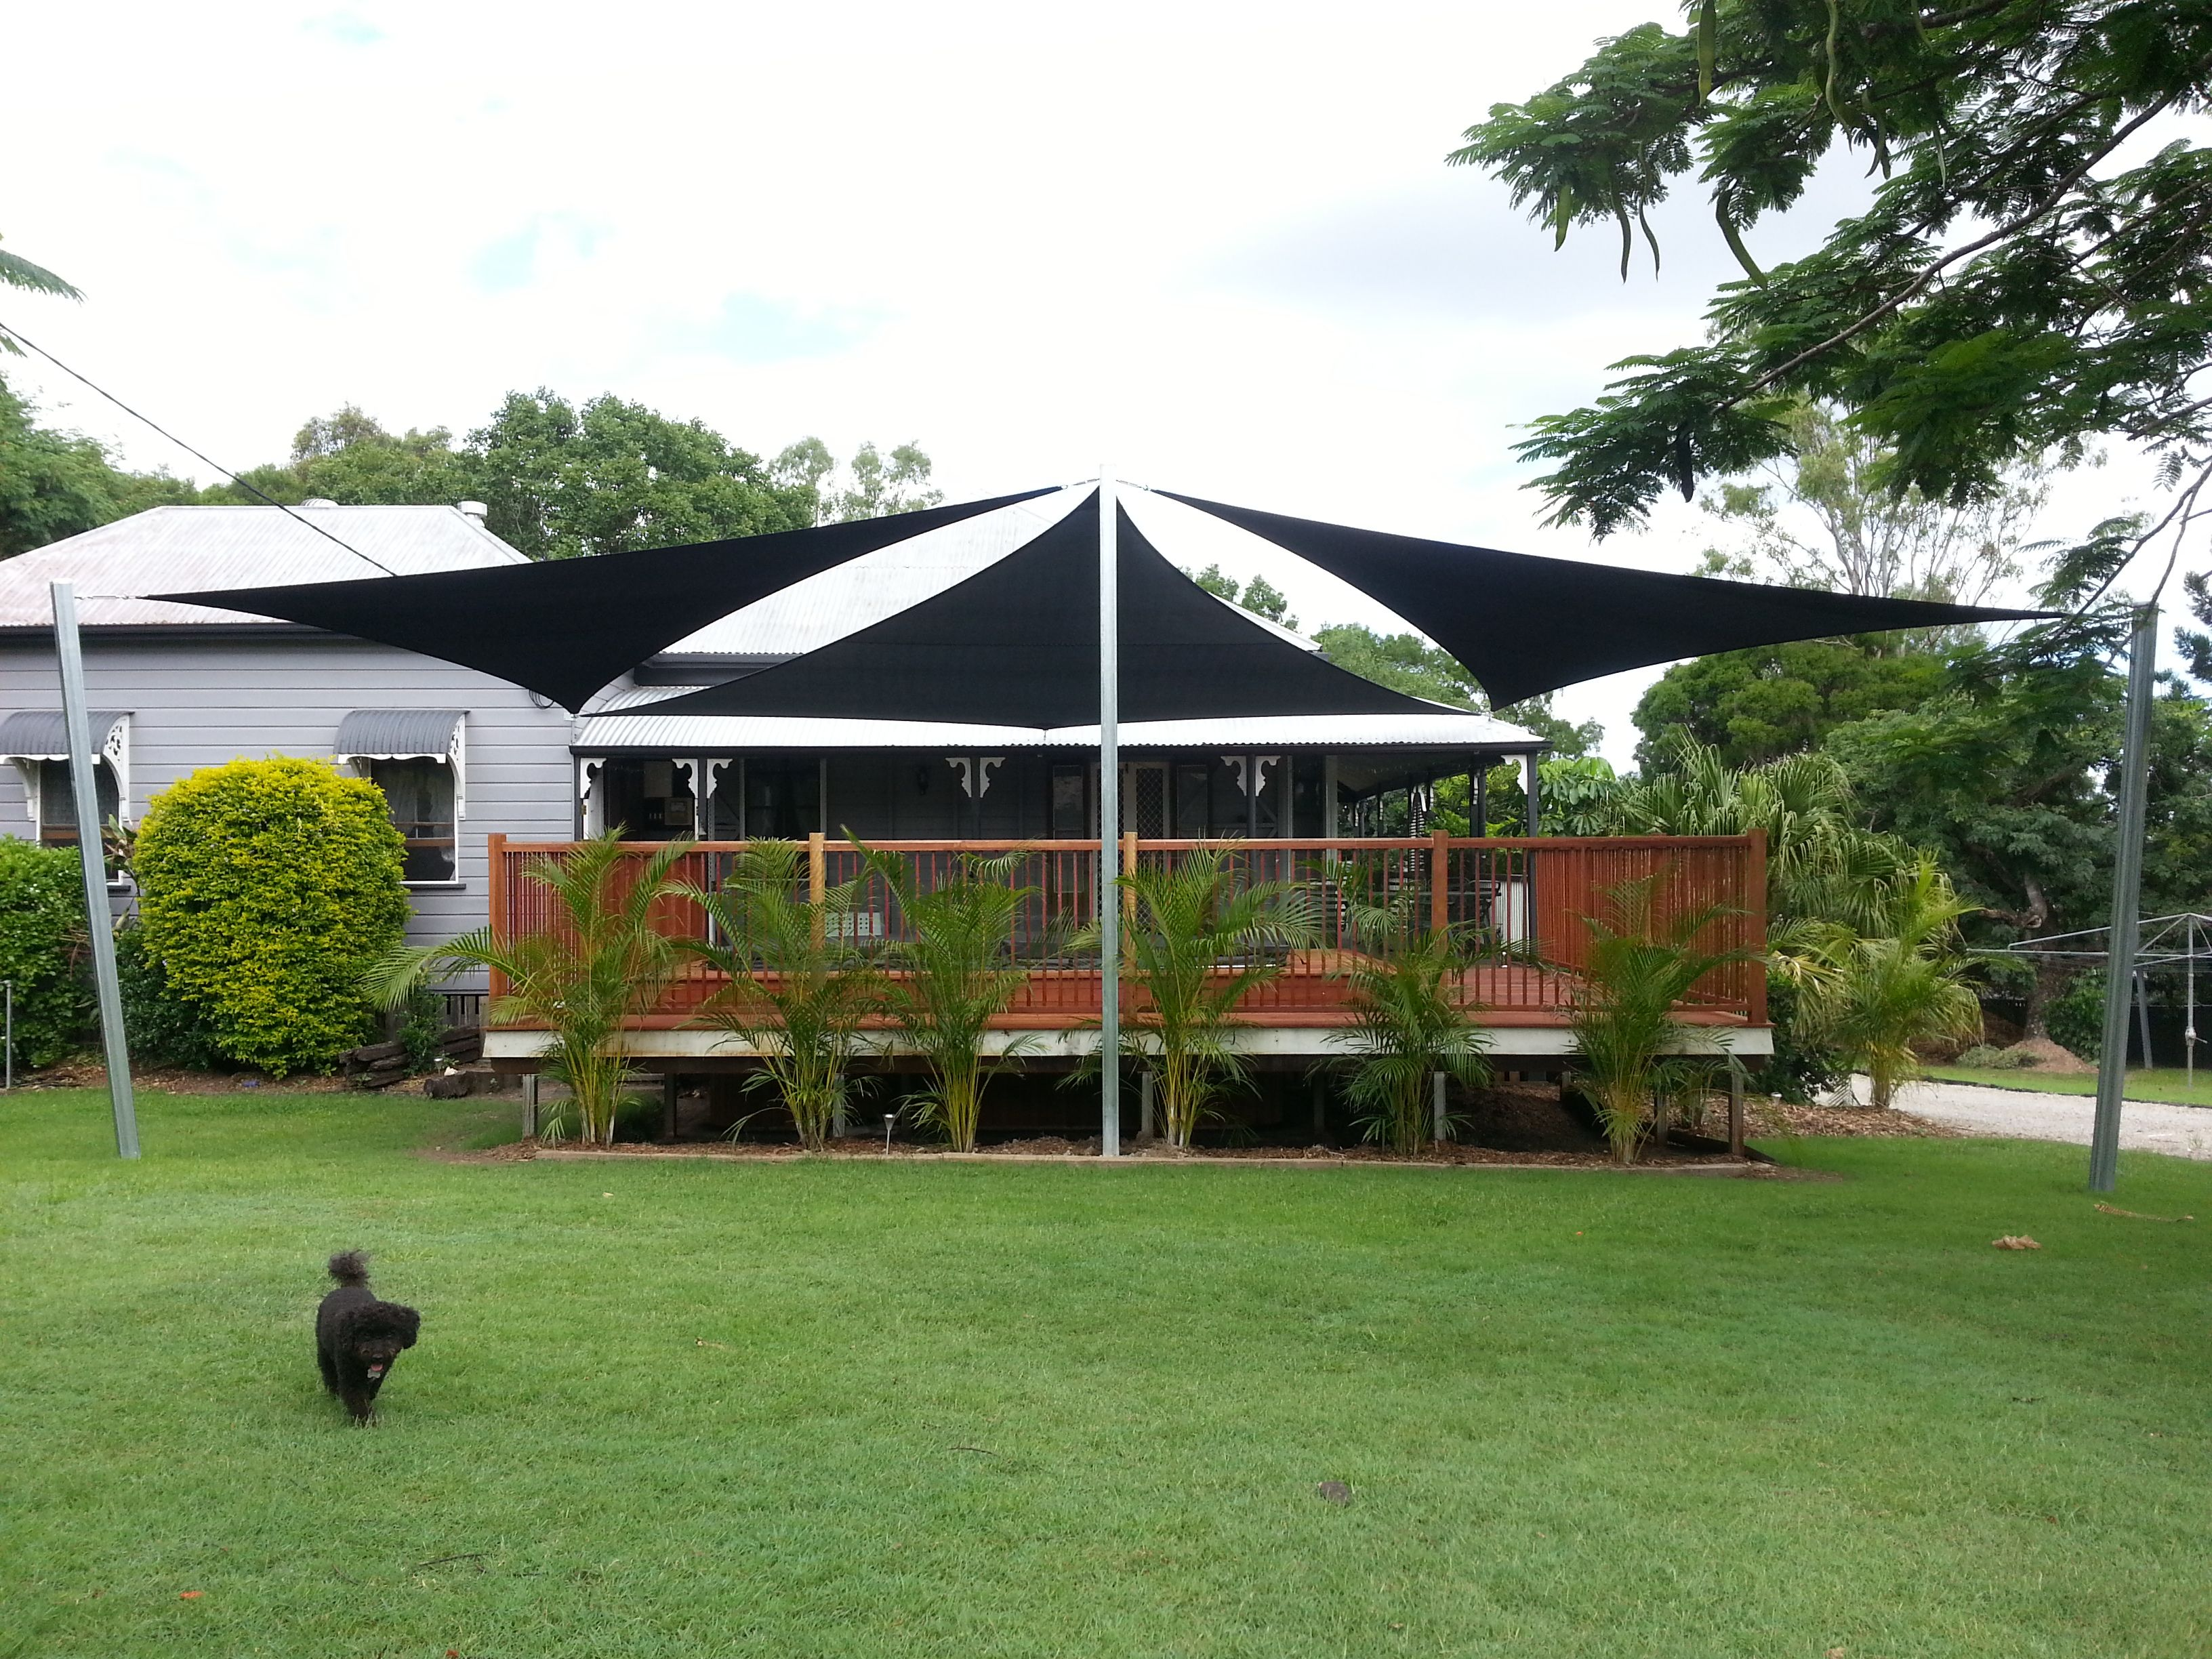 Voile D Ombrage 6 X 4 shade sails - 3 x triangles, balance between shade and sky